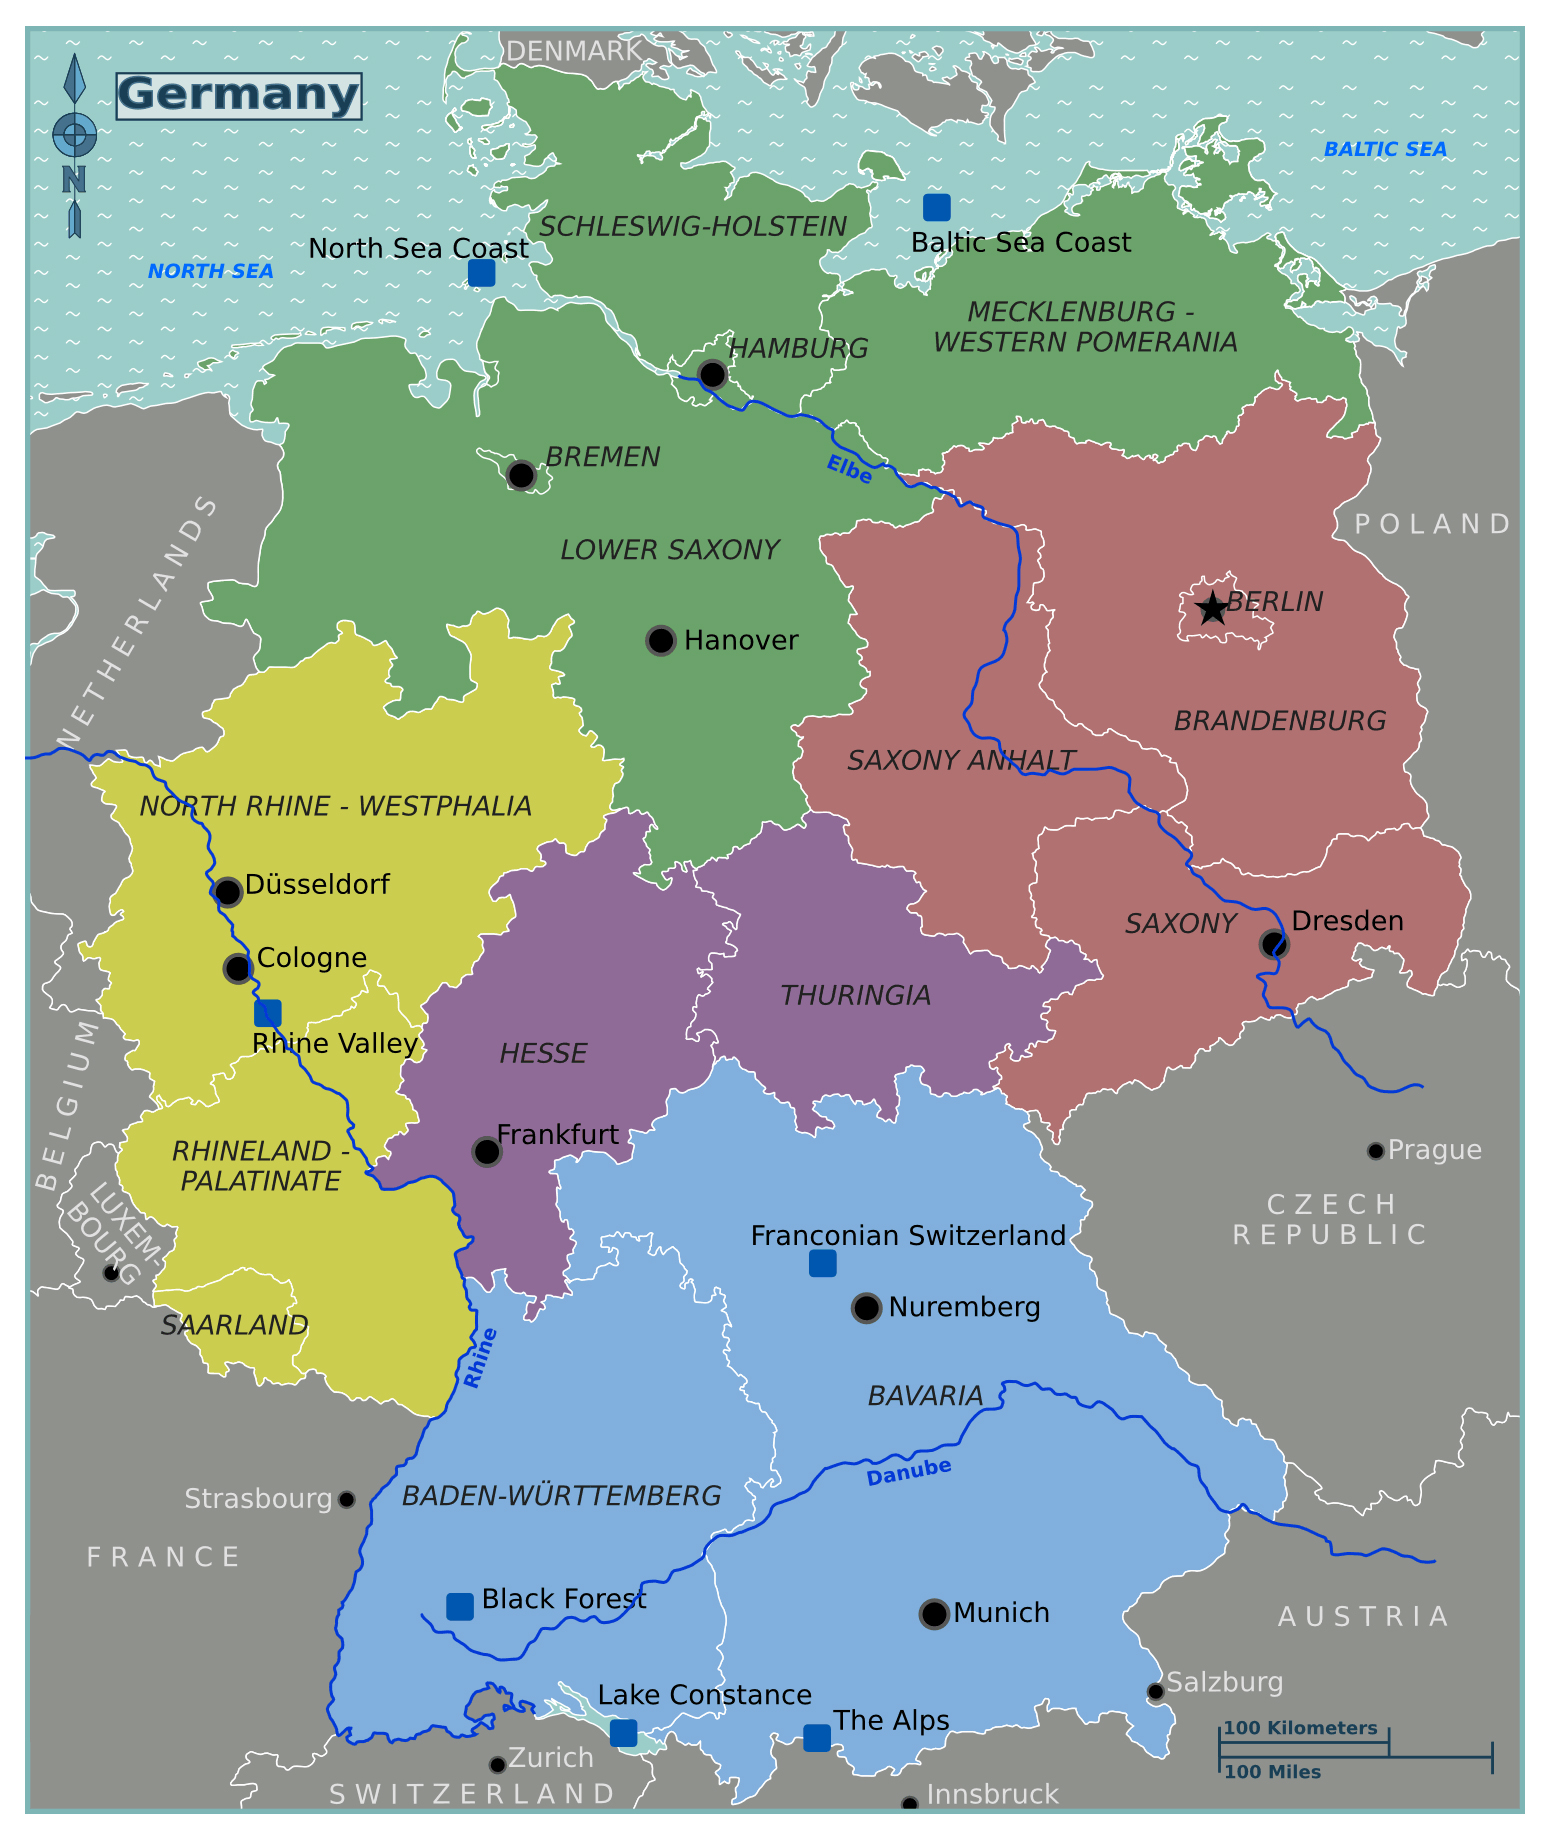 Large regions map of Germany Germany Europe Mapsland – Map of German Regions